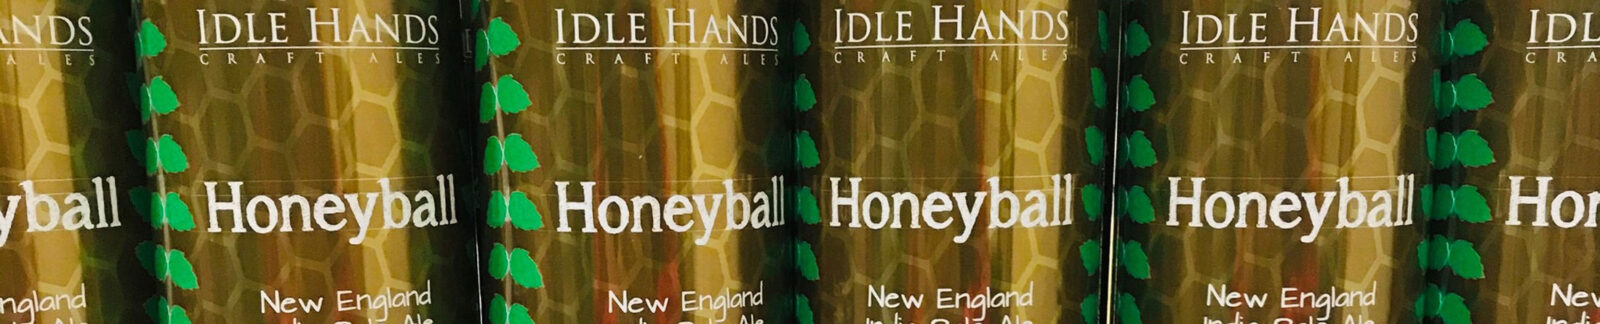 Honeyball IPA by Idle Hands Brewery